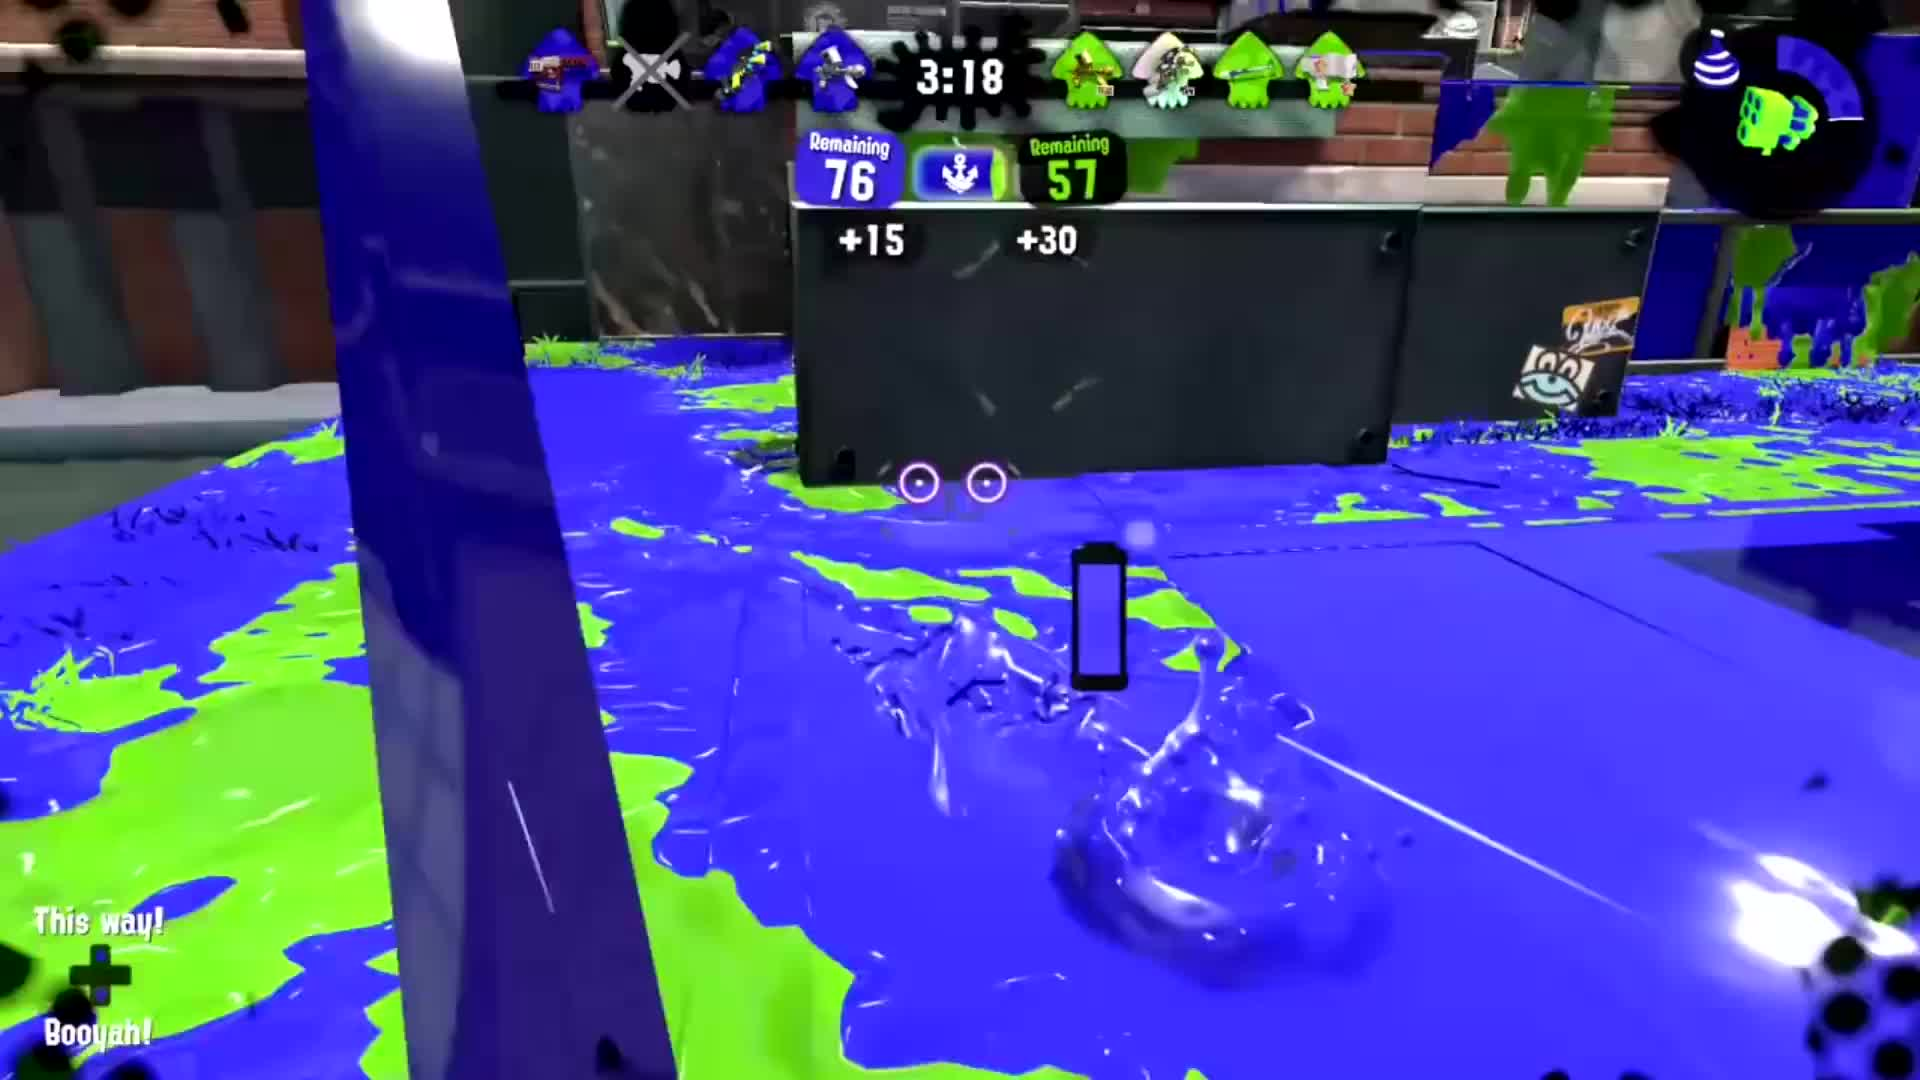 Failboat, Fails, Splatoon, Splatoon 2, Splatoon 2 Fails, Splatoon Fails, Sploon, funniest moments, let's play, montage, Splatoon 2 but some funny stuff happens「3」 GIFs